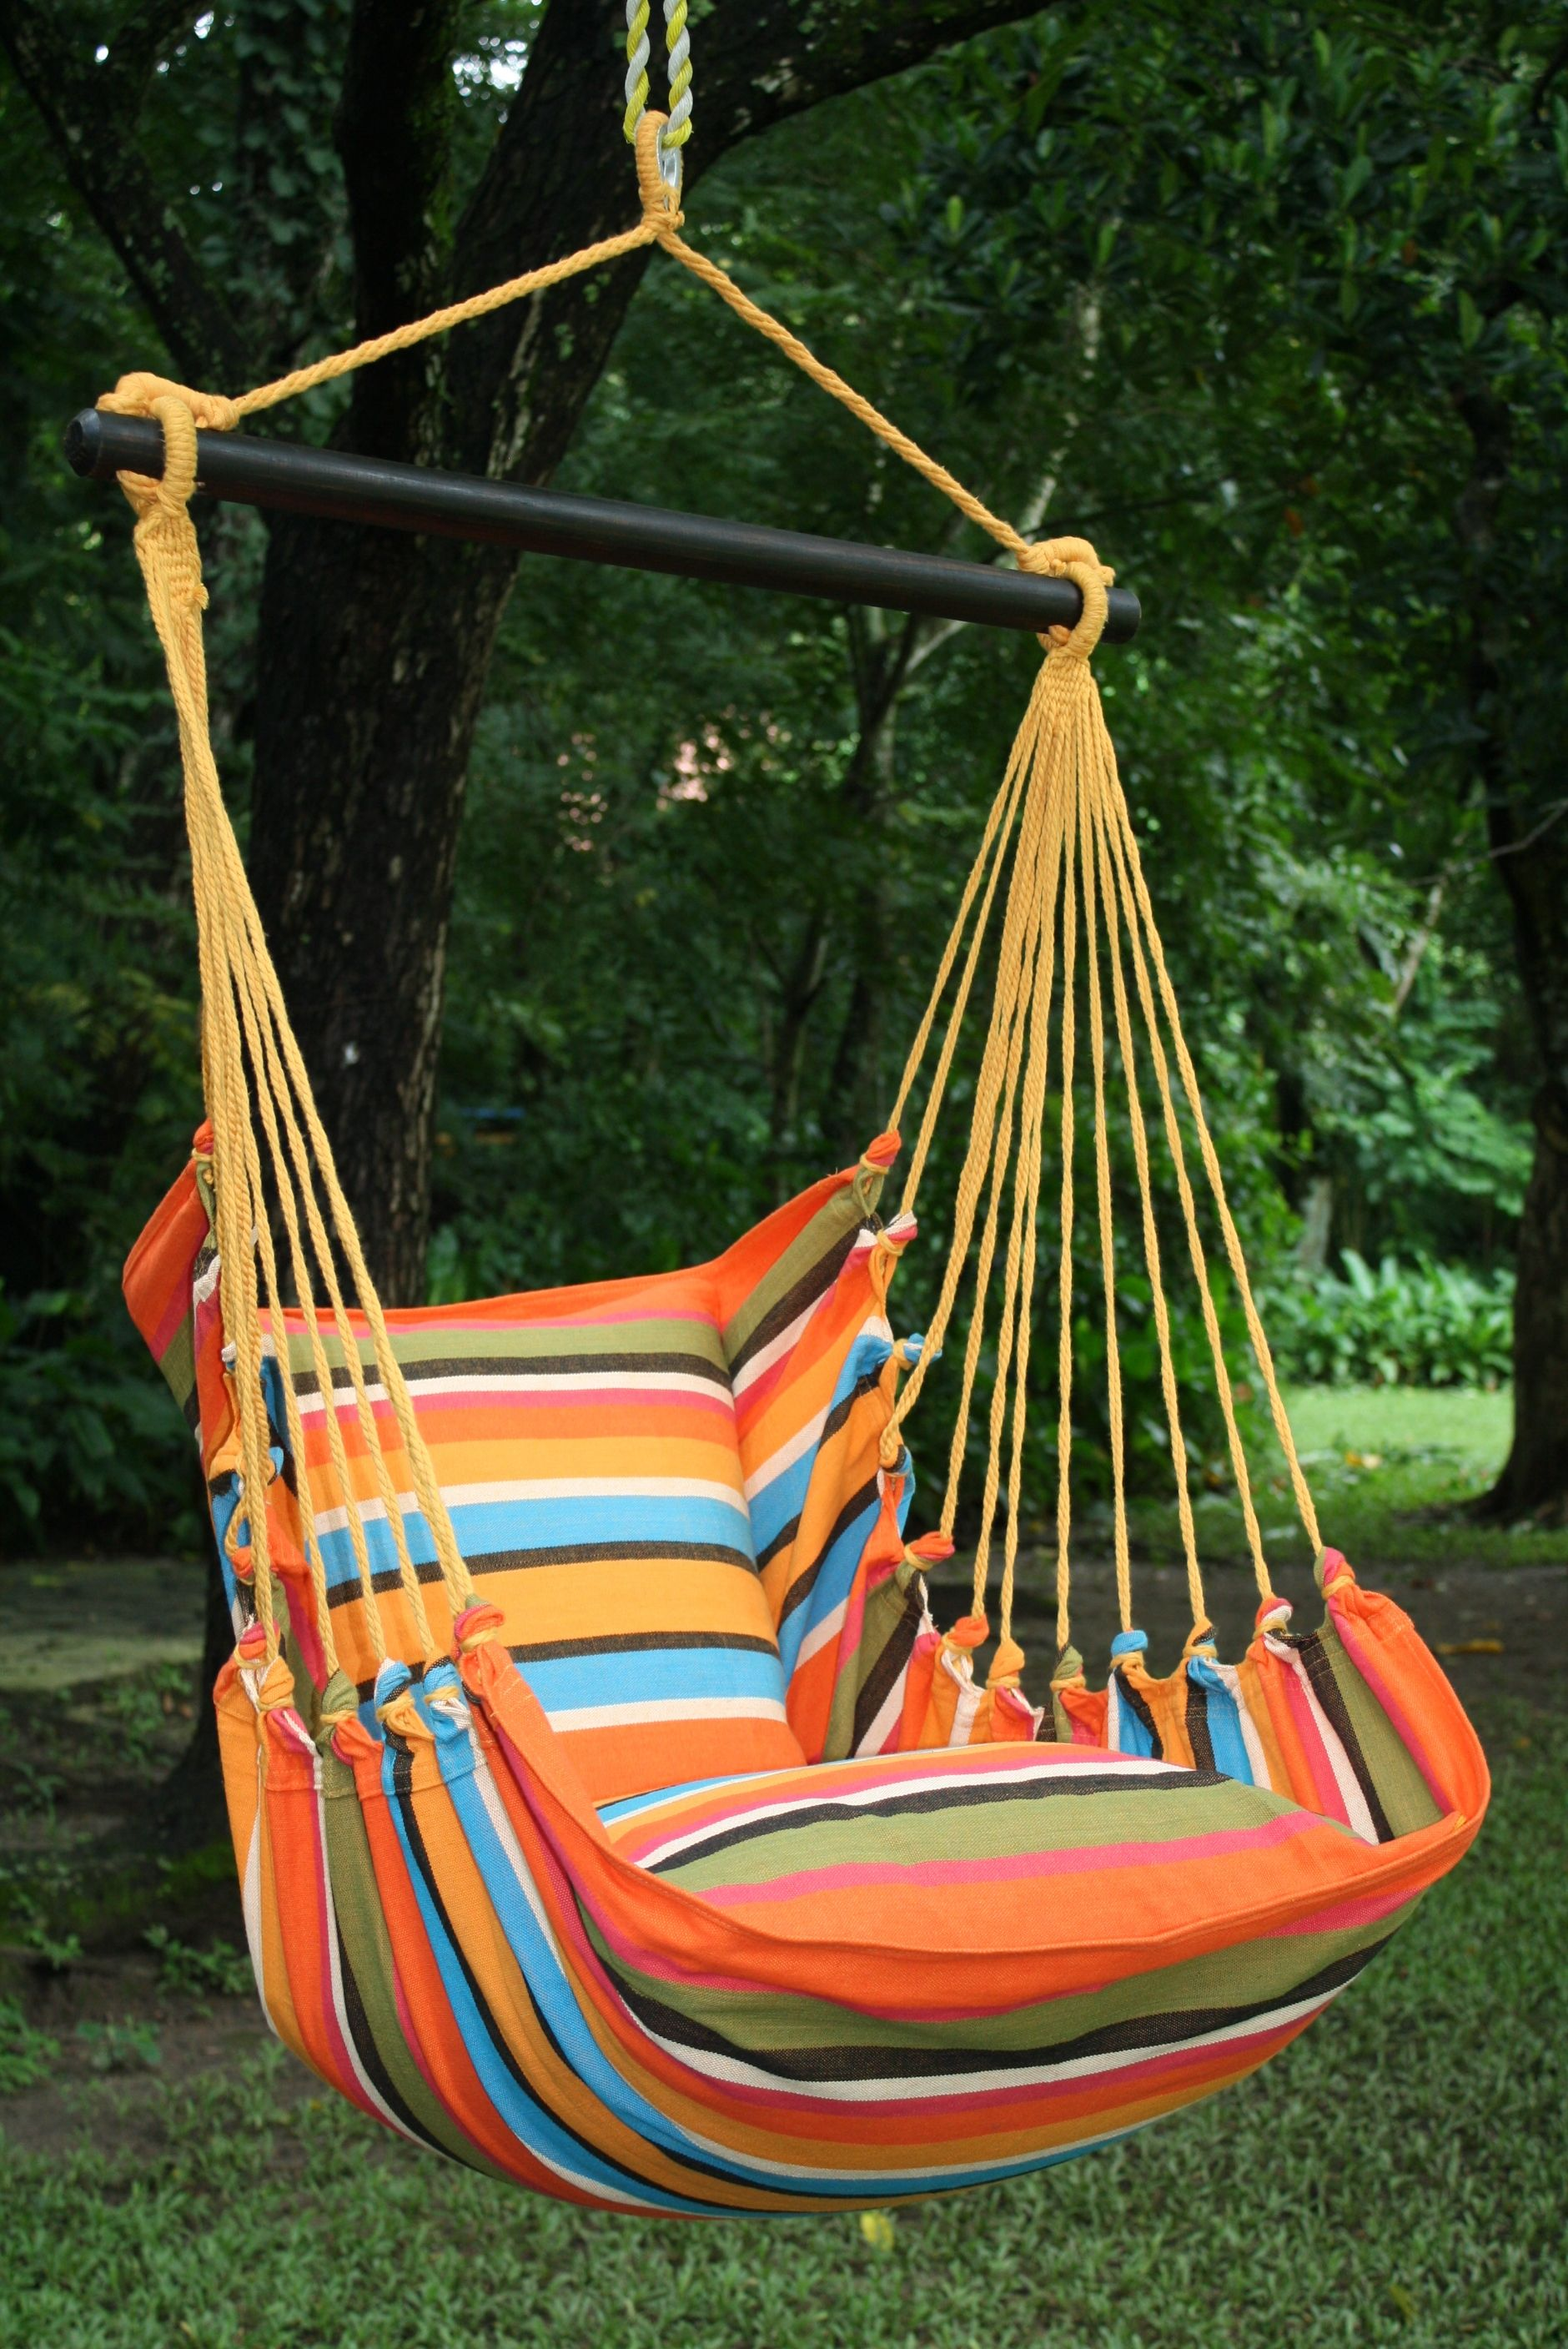 habana chairs products chair wedo hammocks hammock lounger